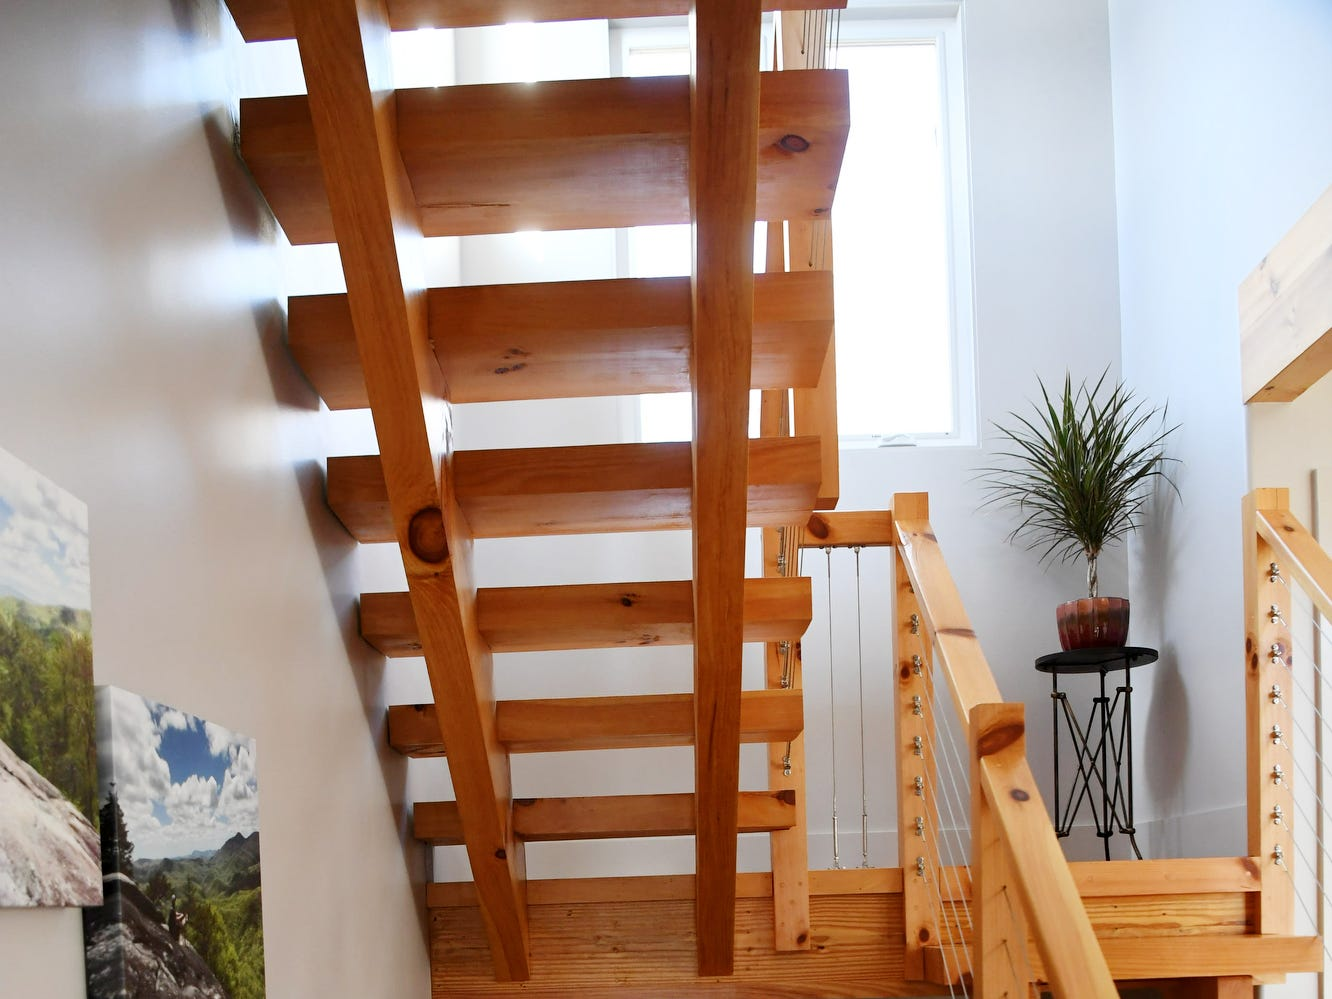 The wooden staircase in Matthew Rooks' Asheville home.